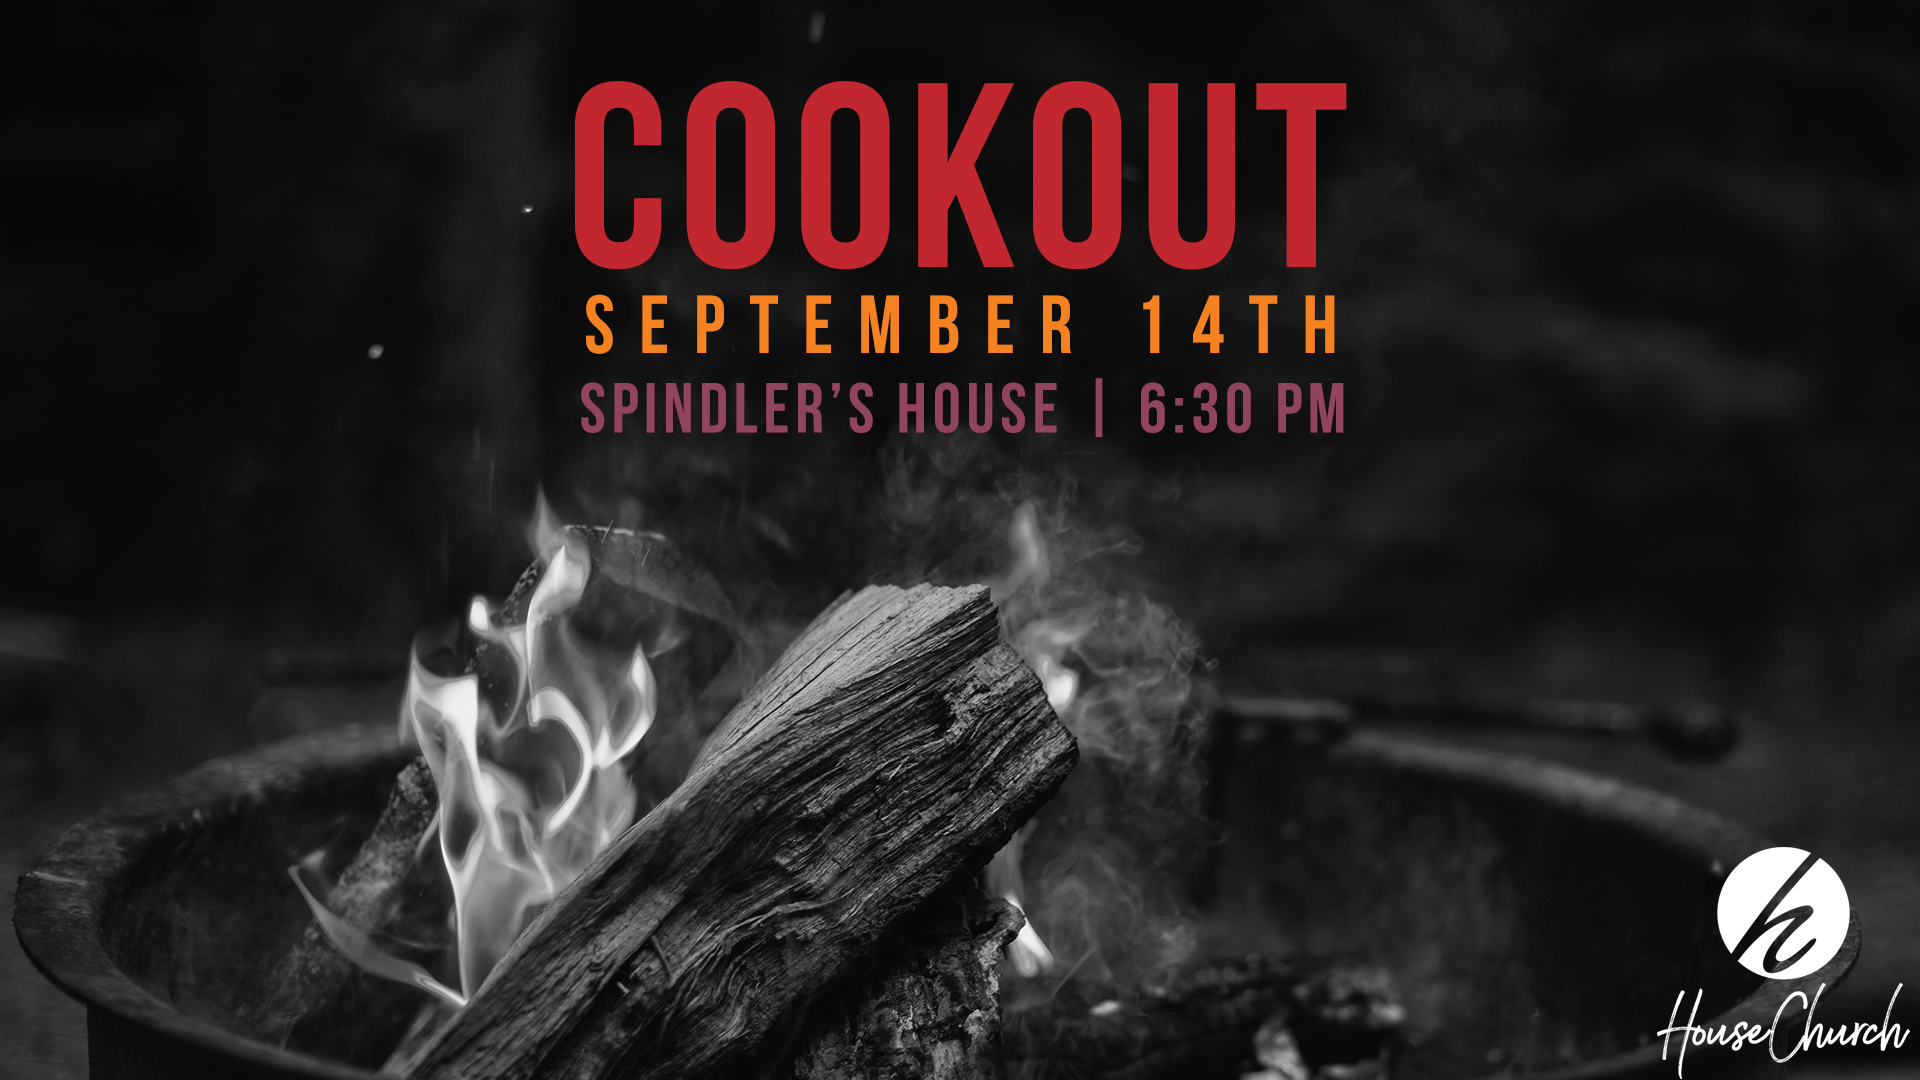 Cookout in Clayton